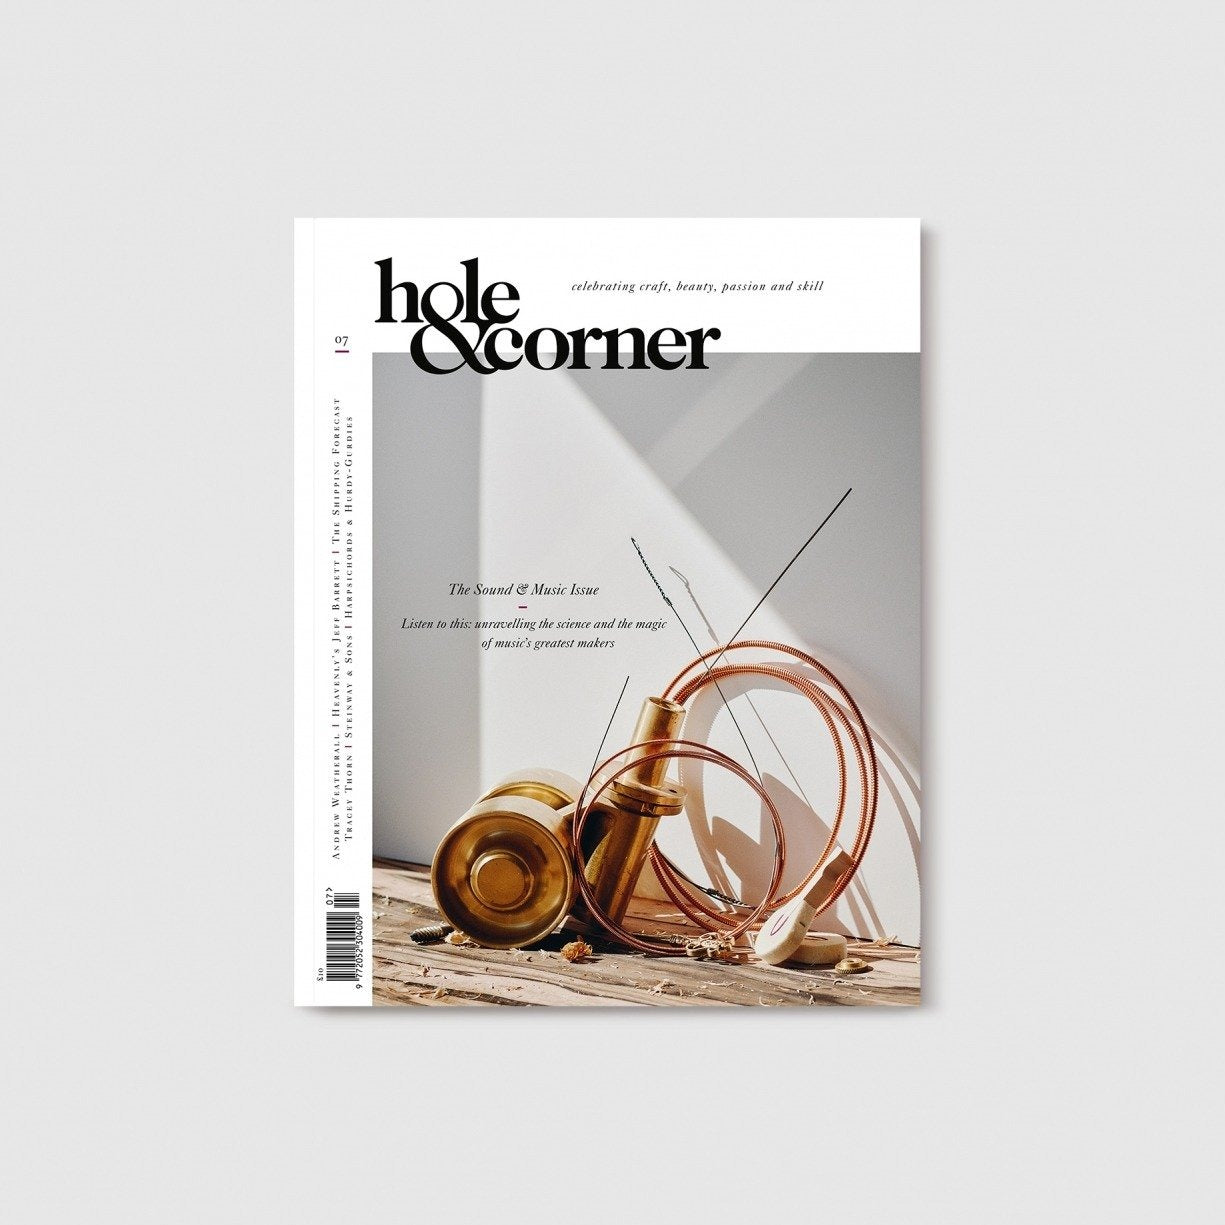 Issue 07: Sound & Music